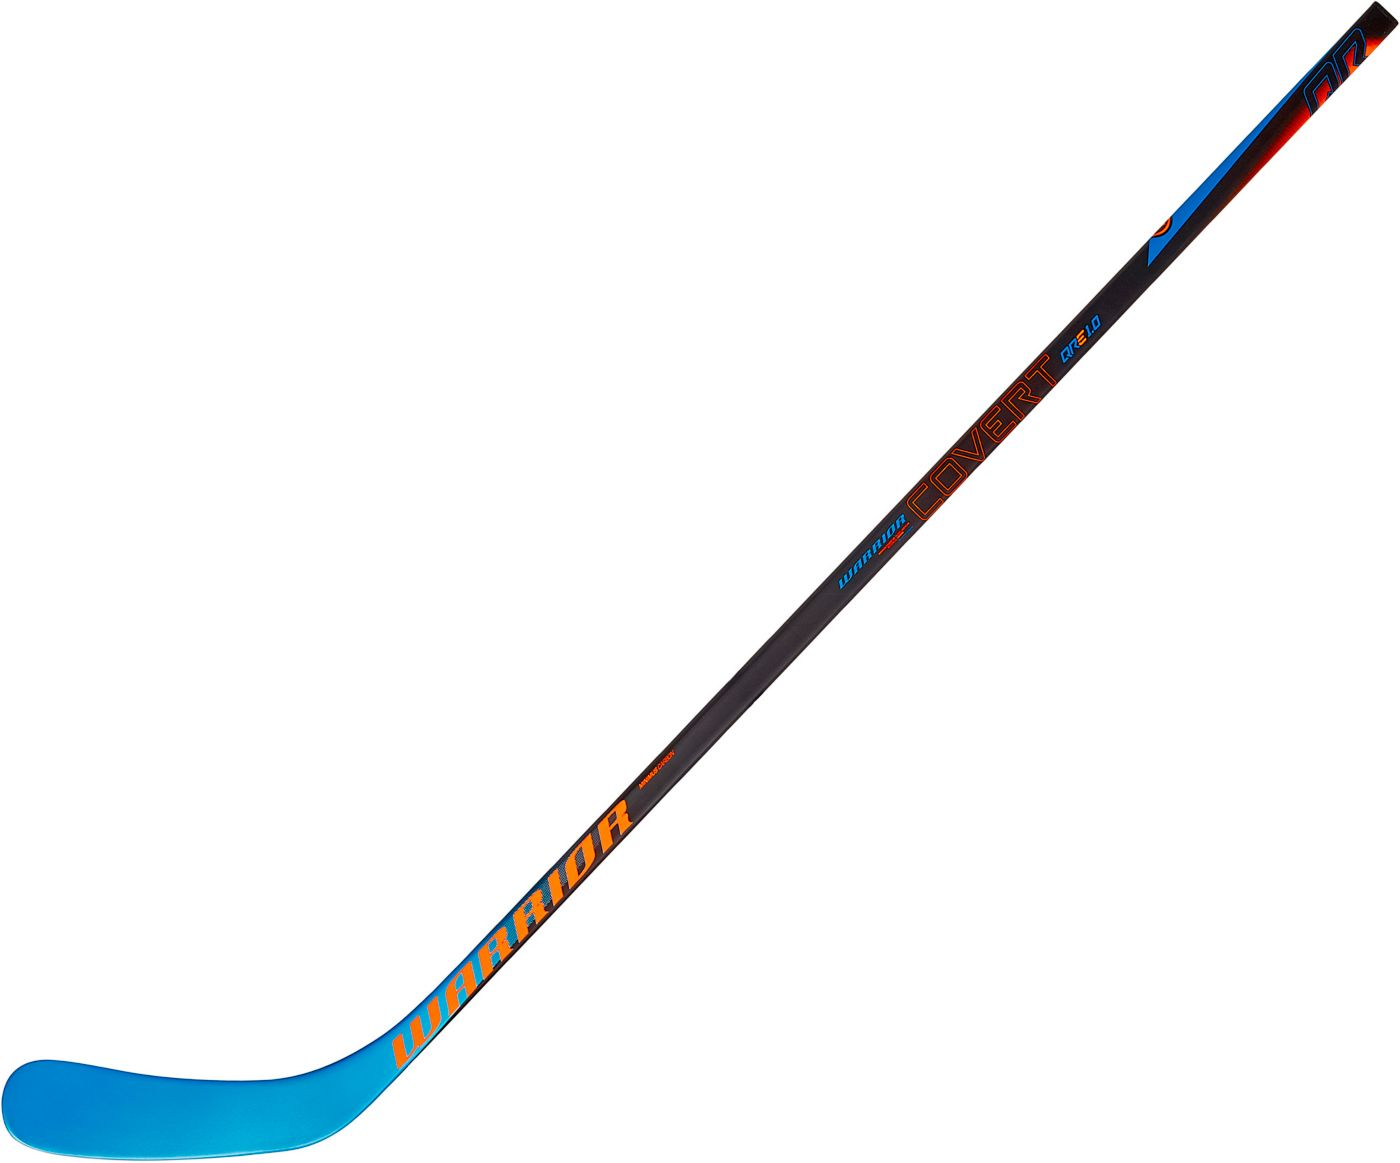 Warrior Youth Covert QRE 1.0 Ice Hockey Stick